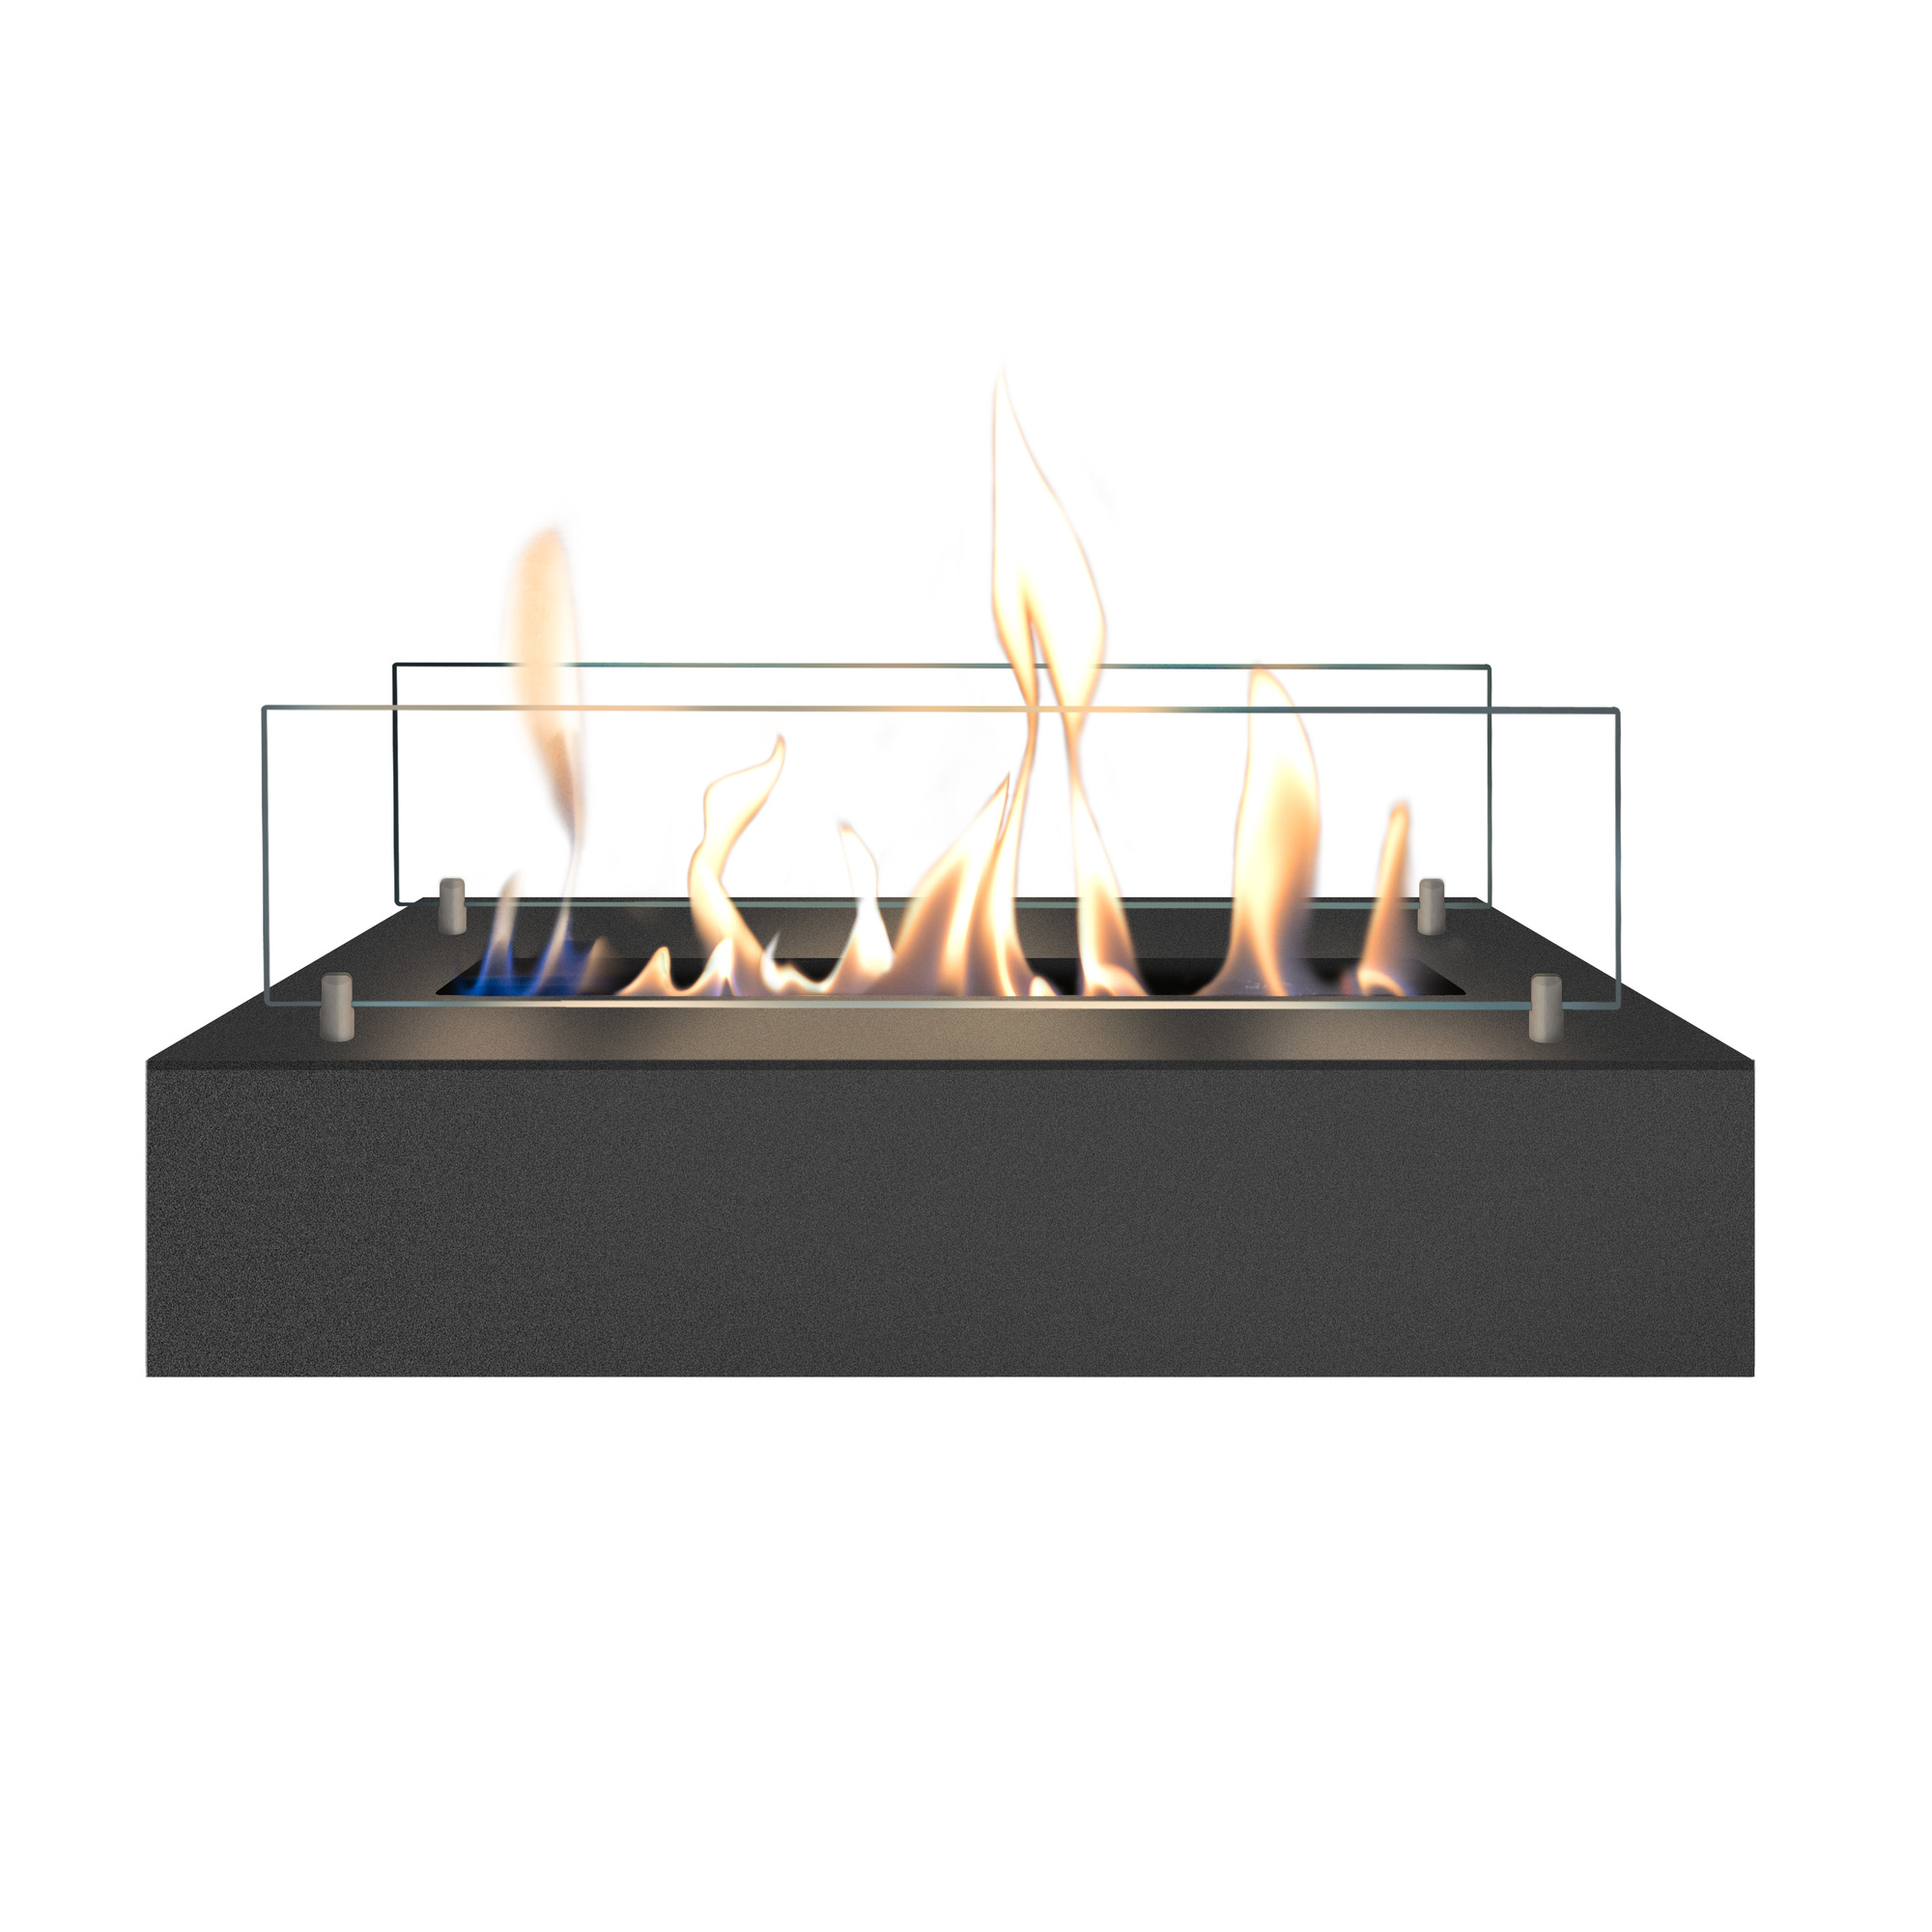 RUBY HOLLAND Bioethanol Burner Small (6) 41 X 21 X 8 cm